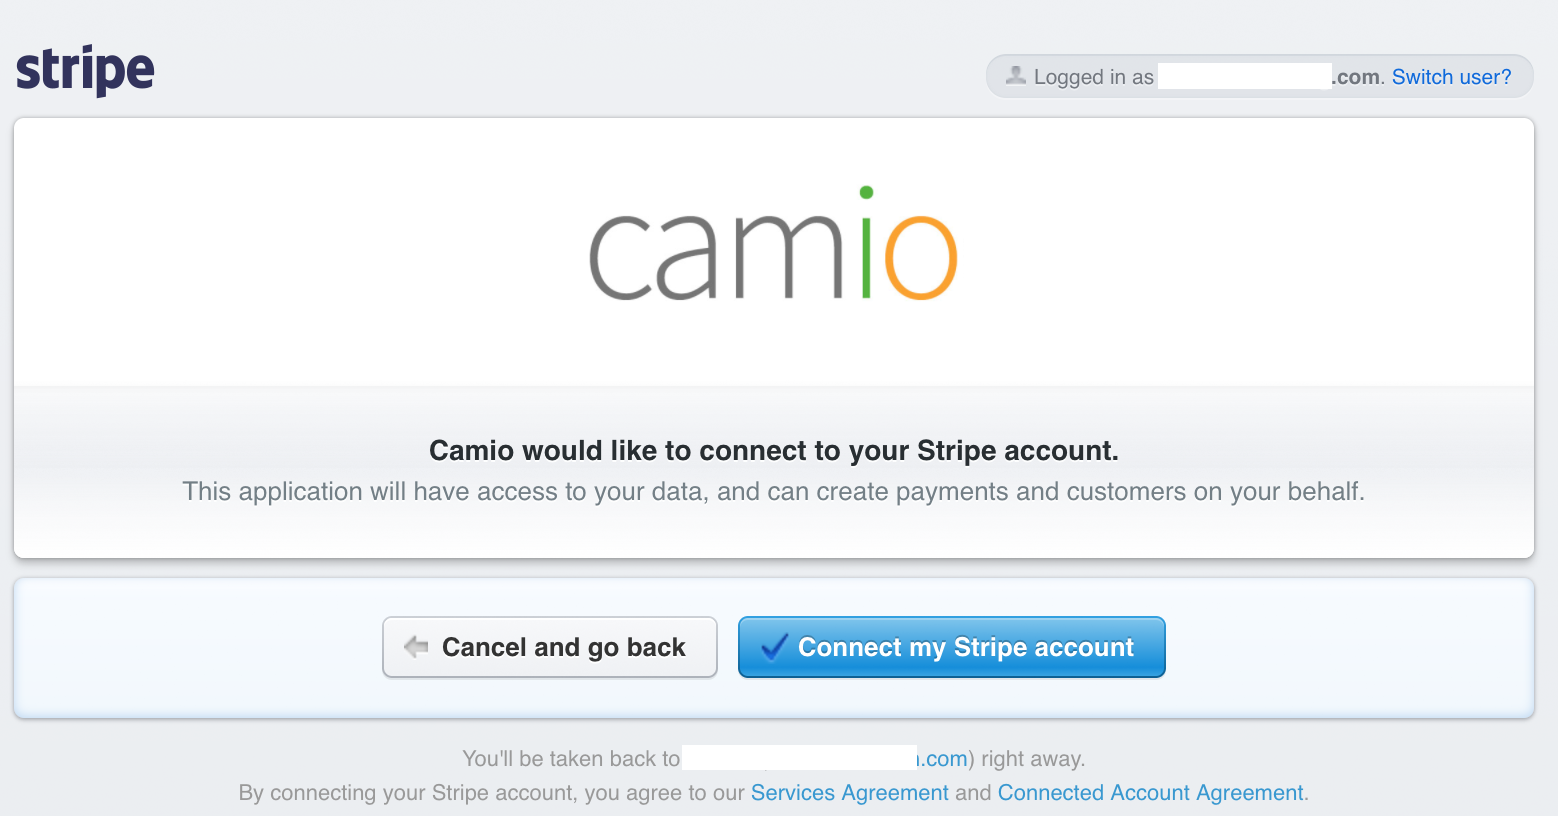 Stripe-Connect-Camio-OAuth-Screen_Shot_2017-09-28_at_8.02.34_PM.png